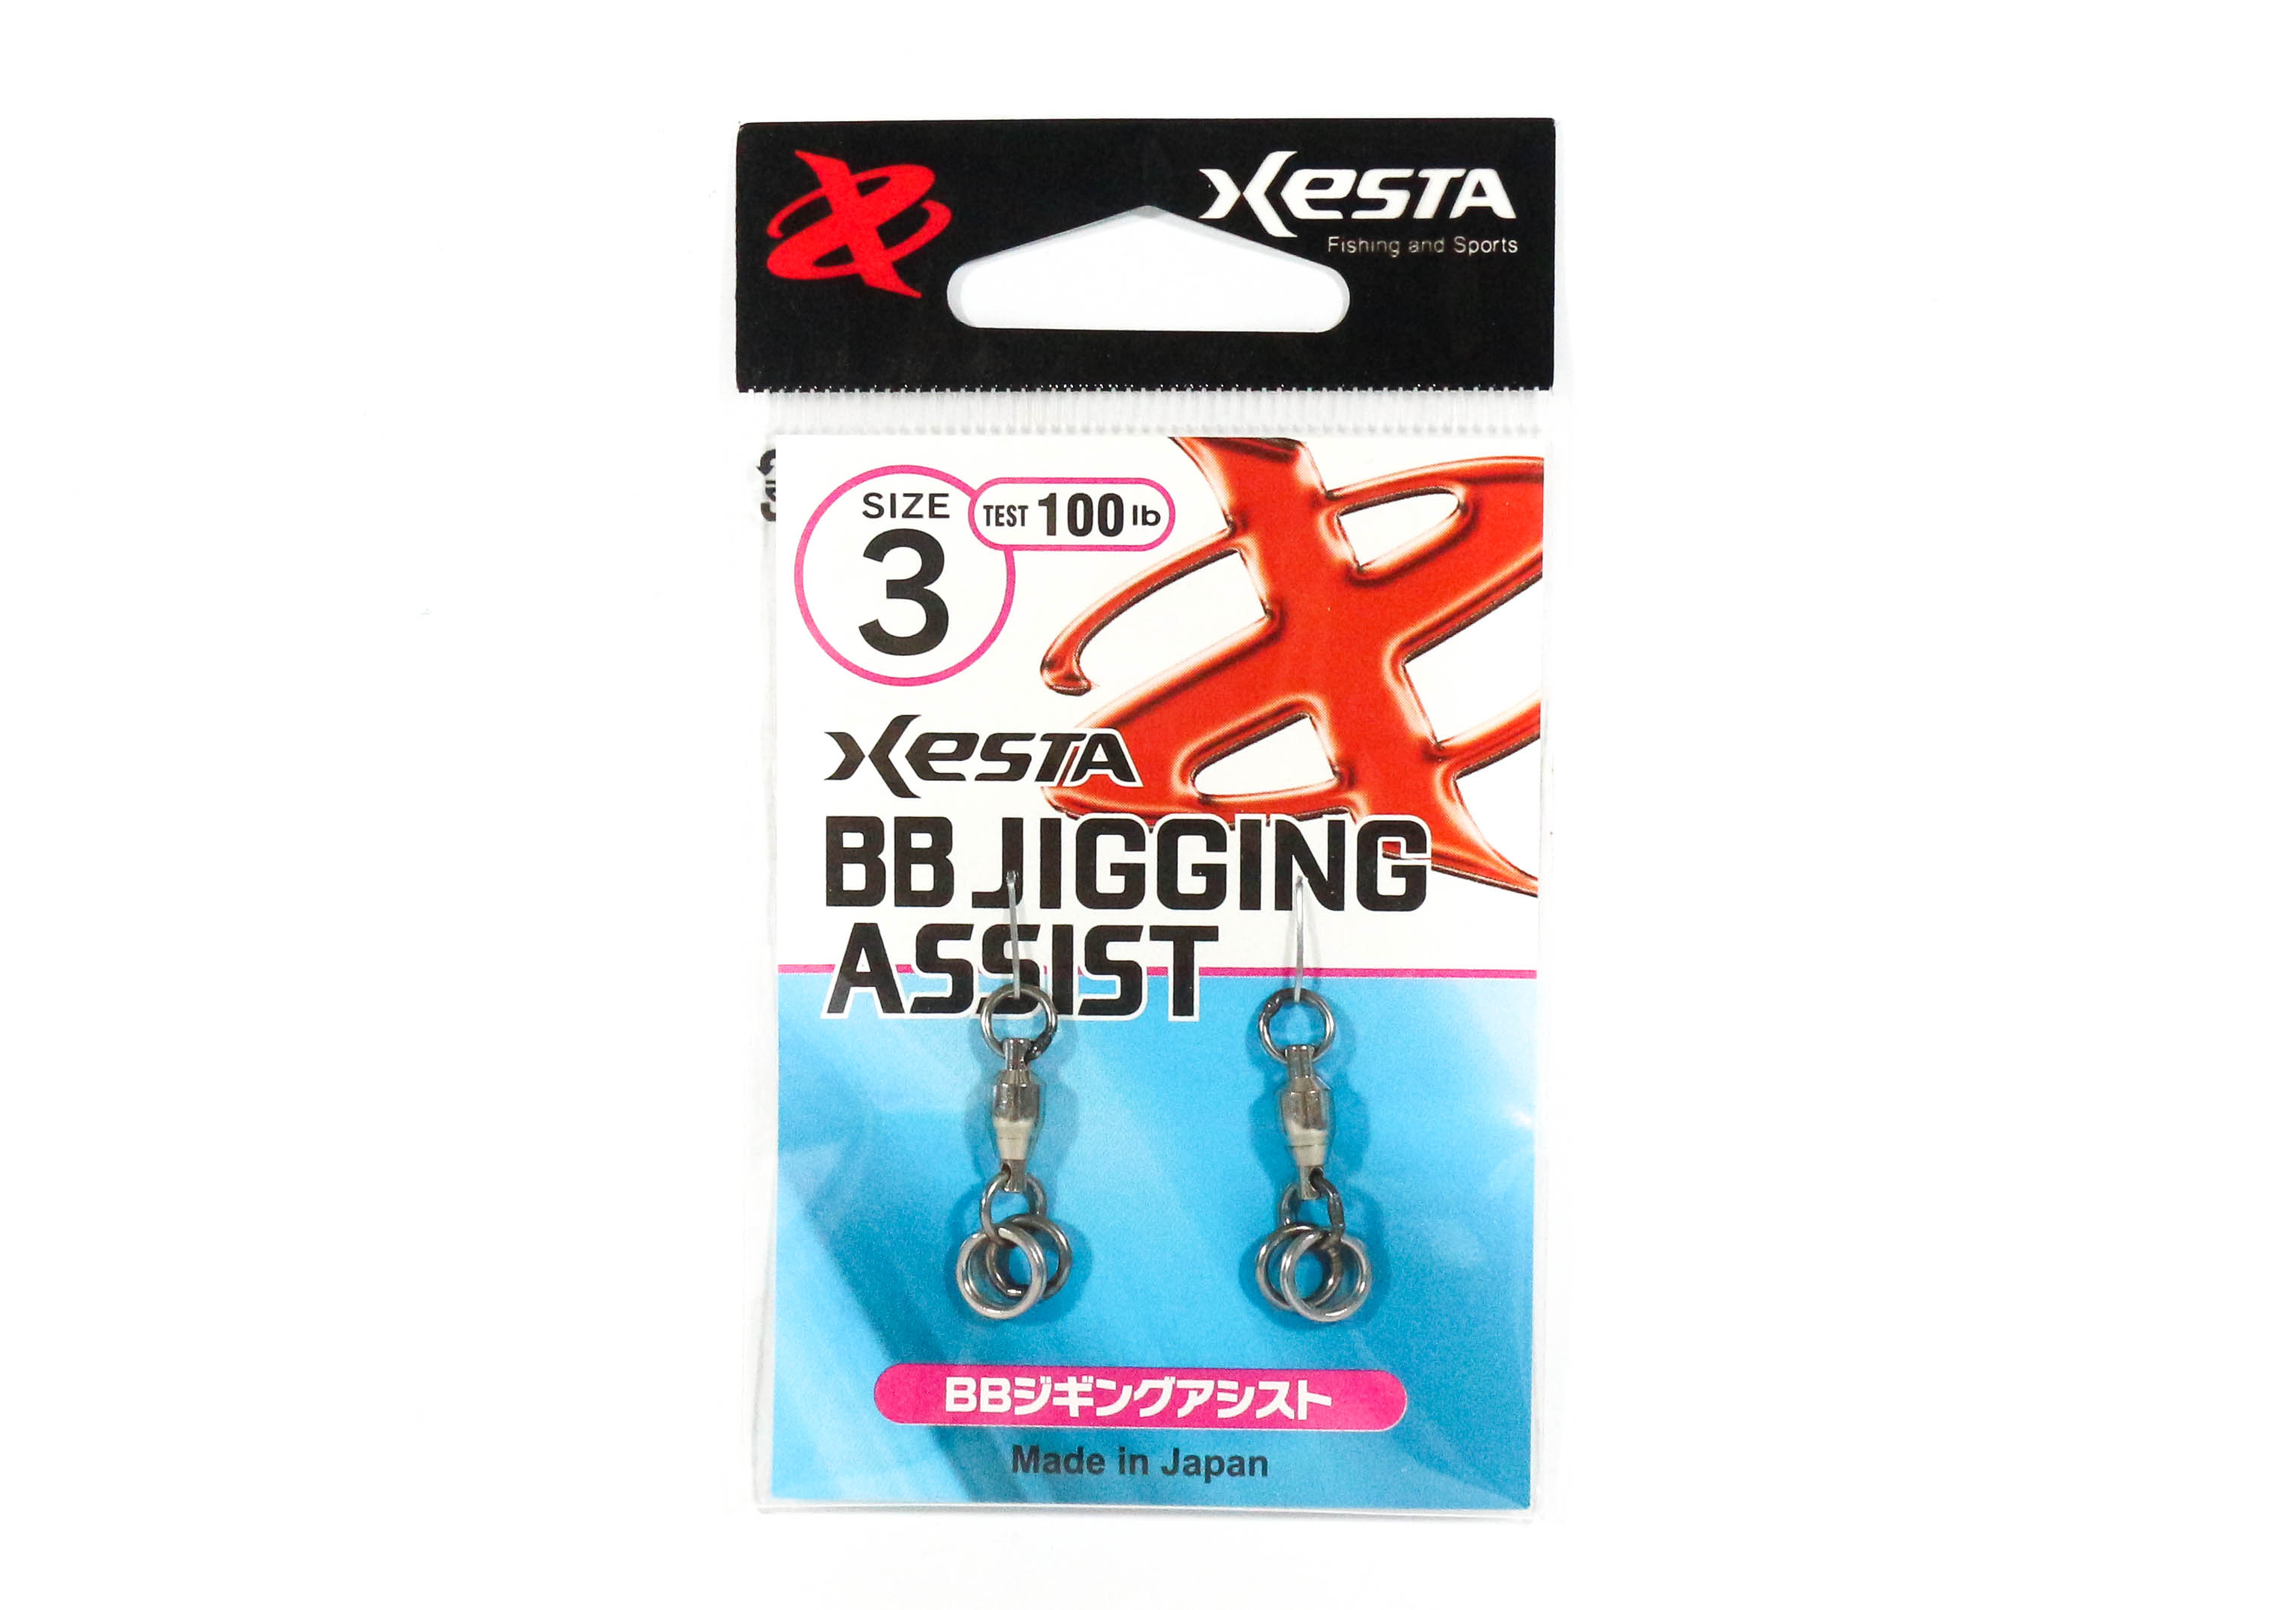 Xesta BB Jigging Assist Swivel With Solid Ring Size 3 100 lb , 2 Pieces (1843)